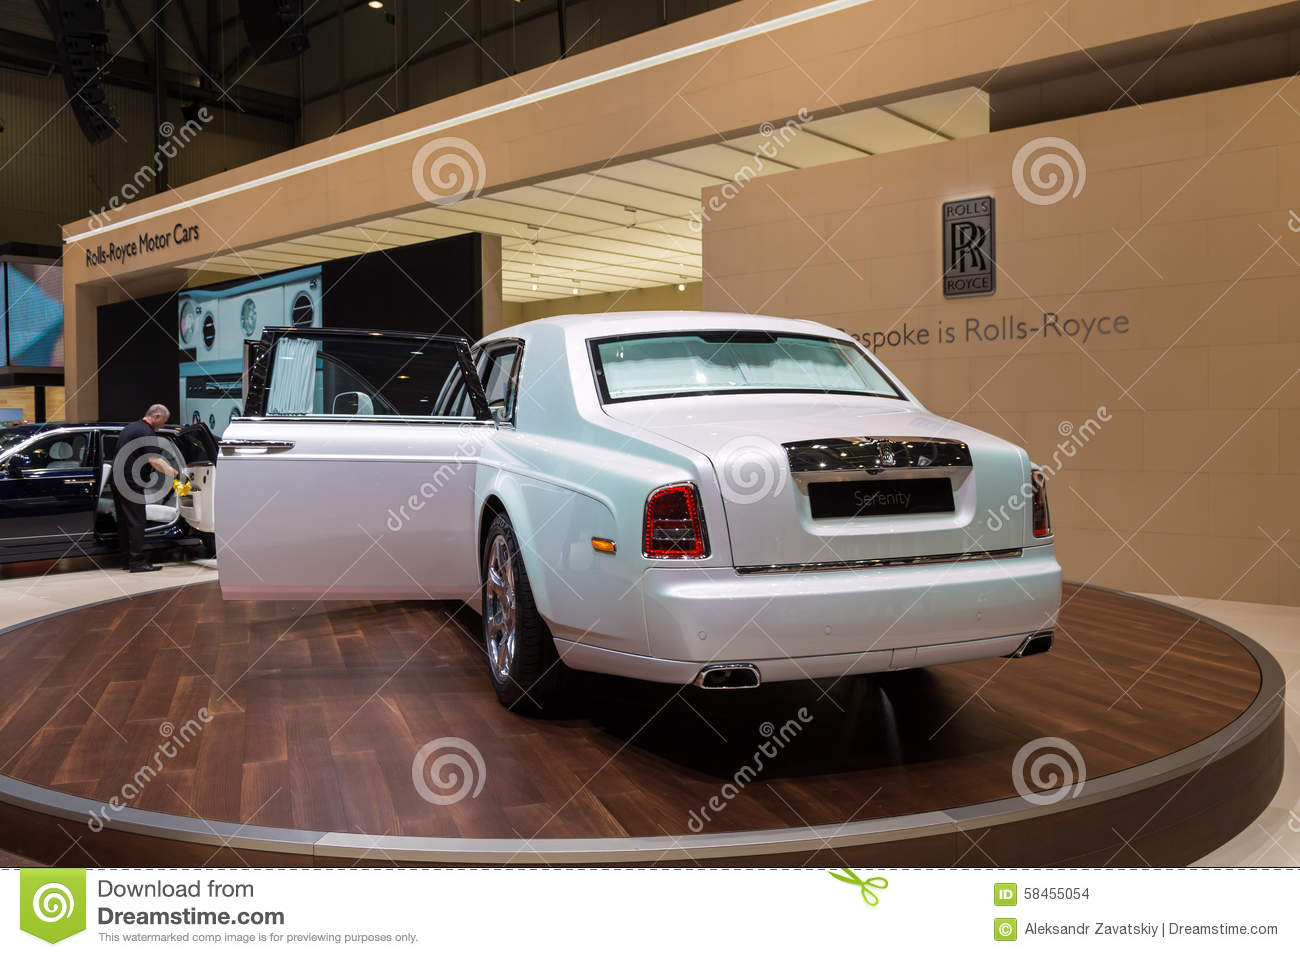 Phantom Serenity 2015 Rolls Royce Phantom Serenity Editorial Stock Image Image Of